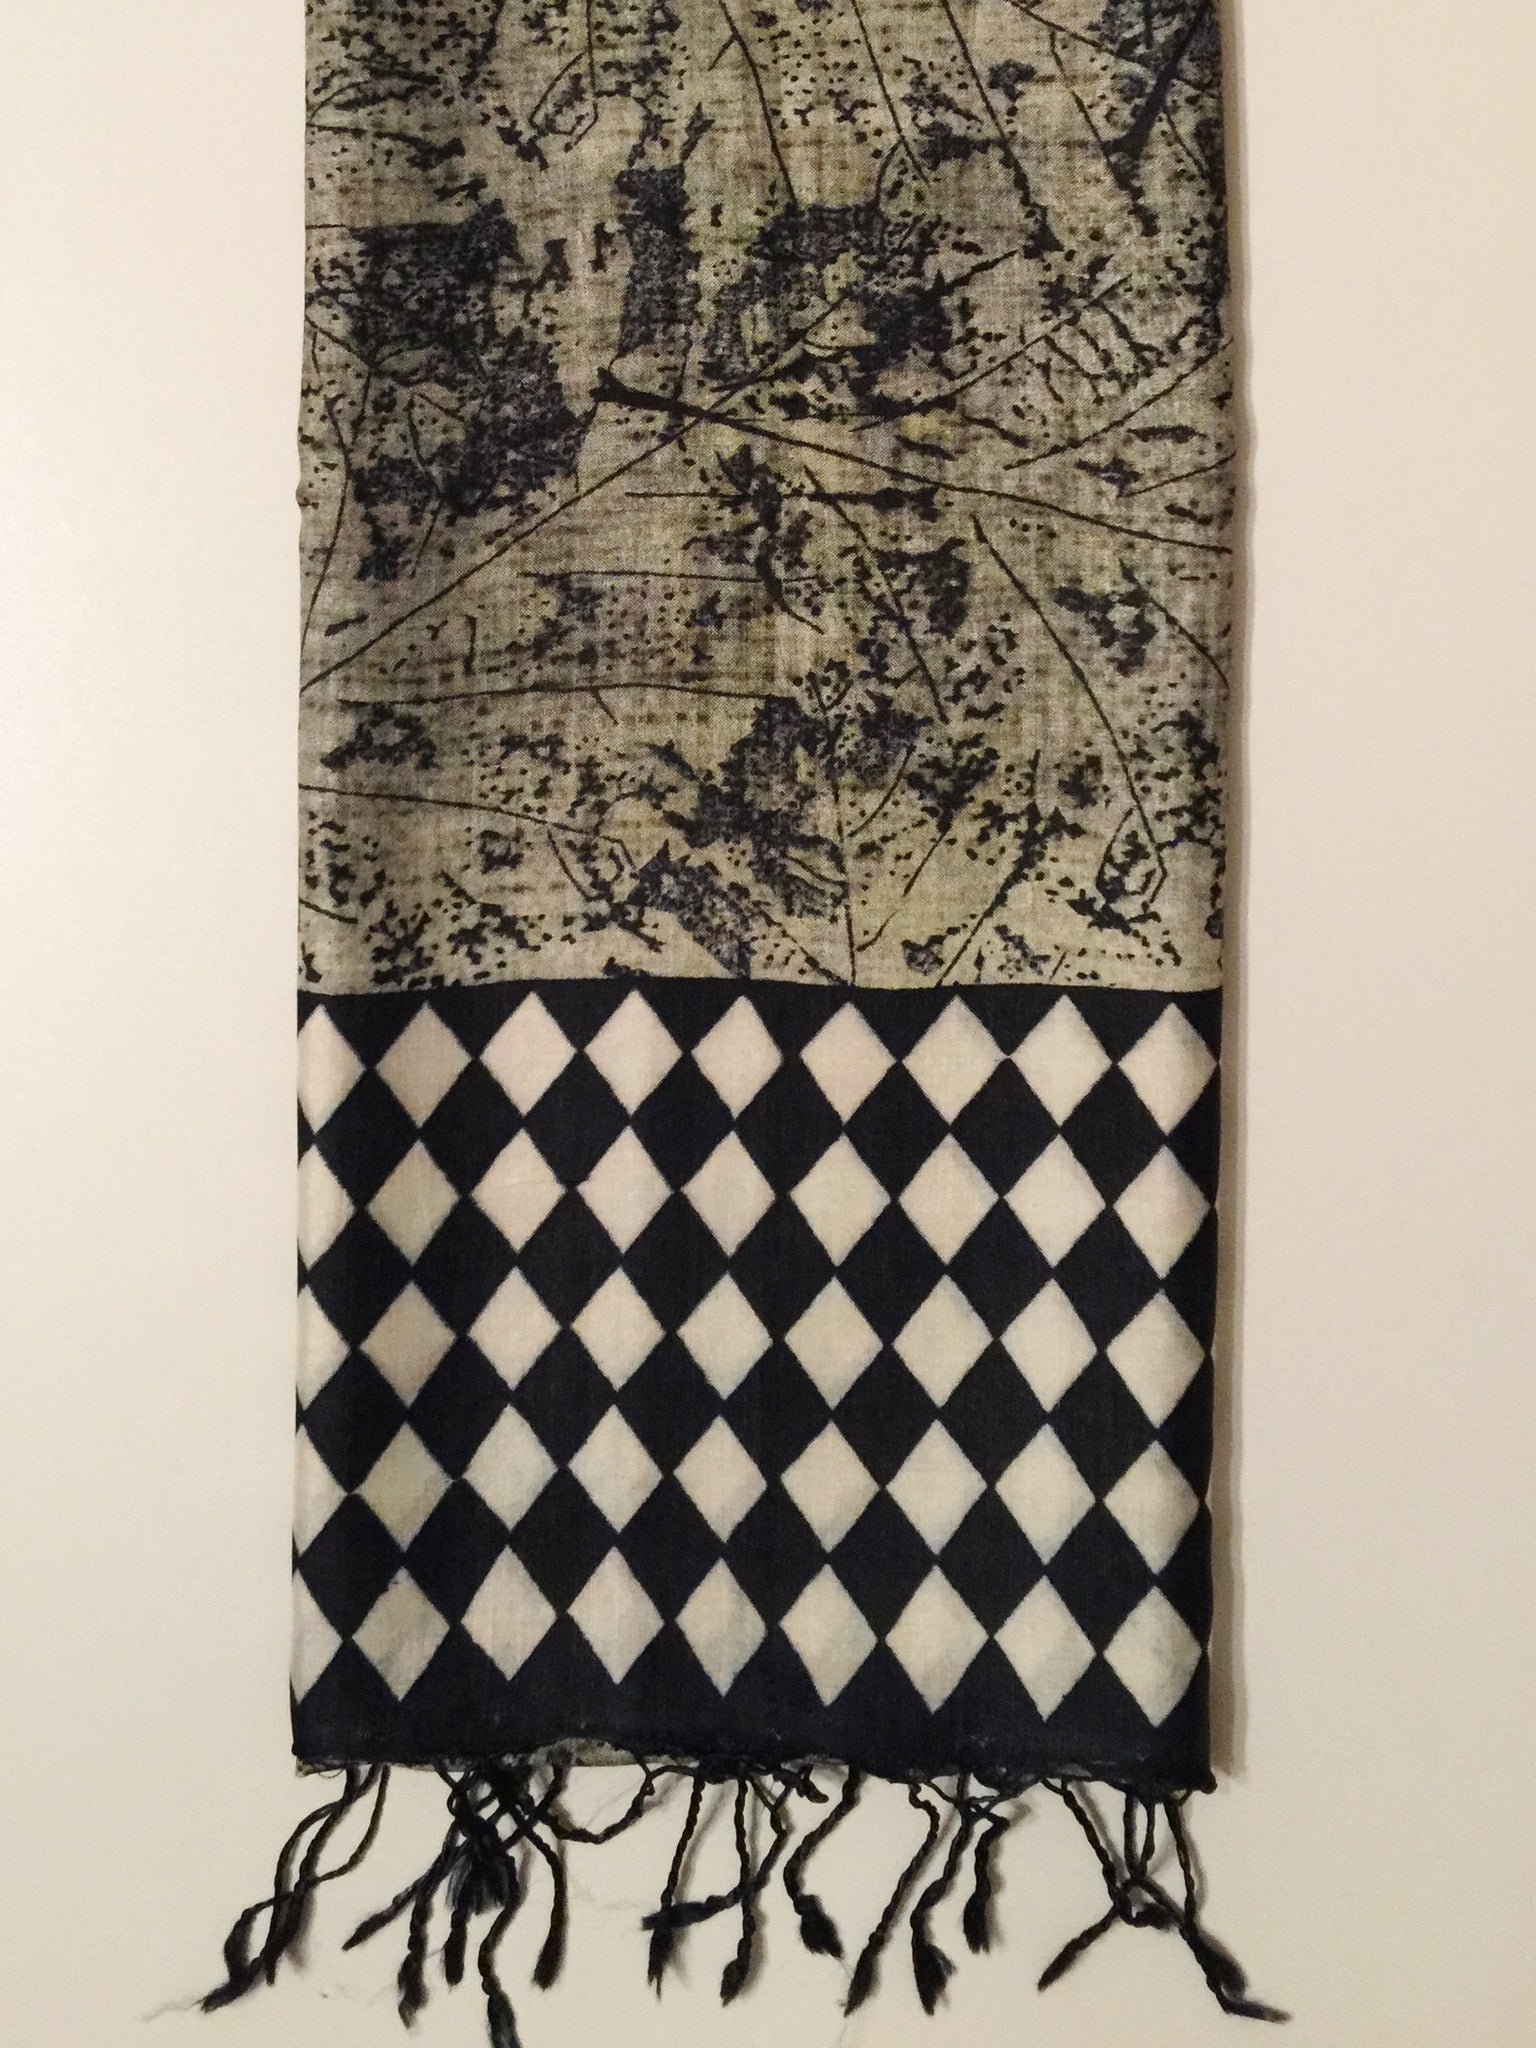 Peace silk scarf black and white checked blockprinted Folklorica | Eri Seidenschal handgewebt Karo